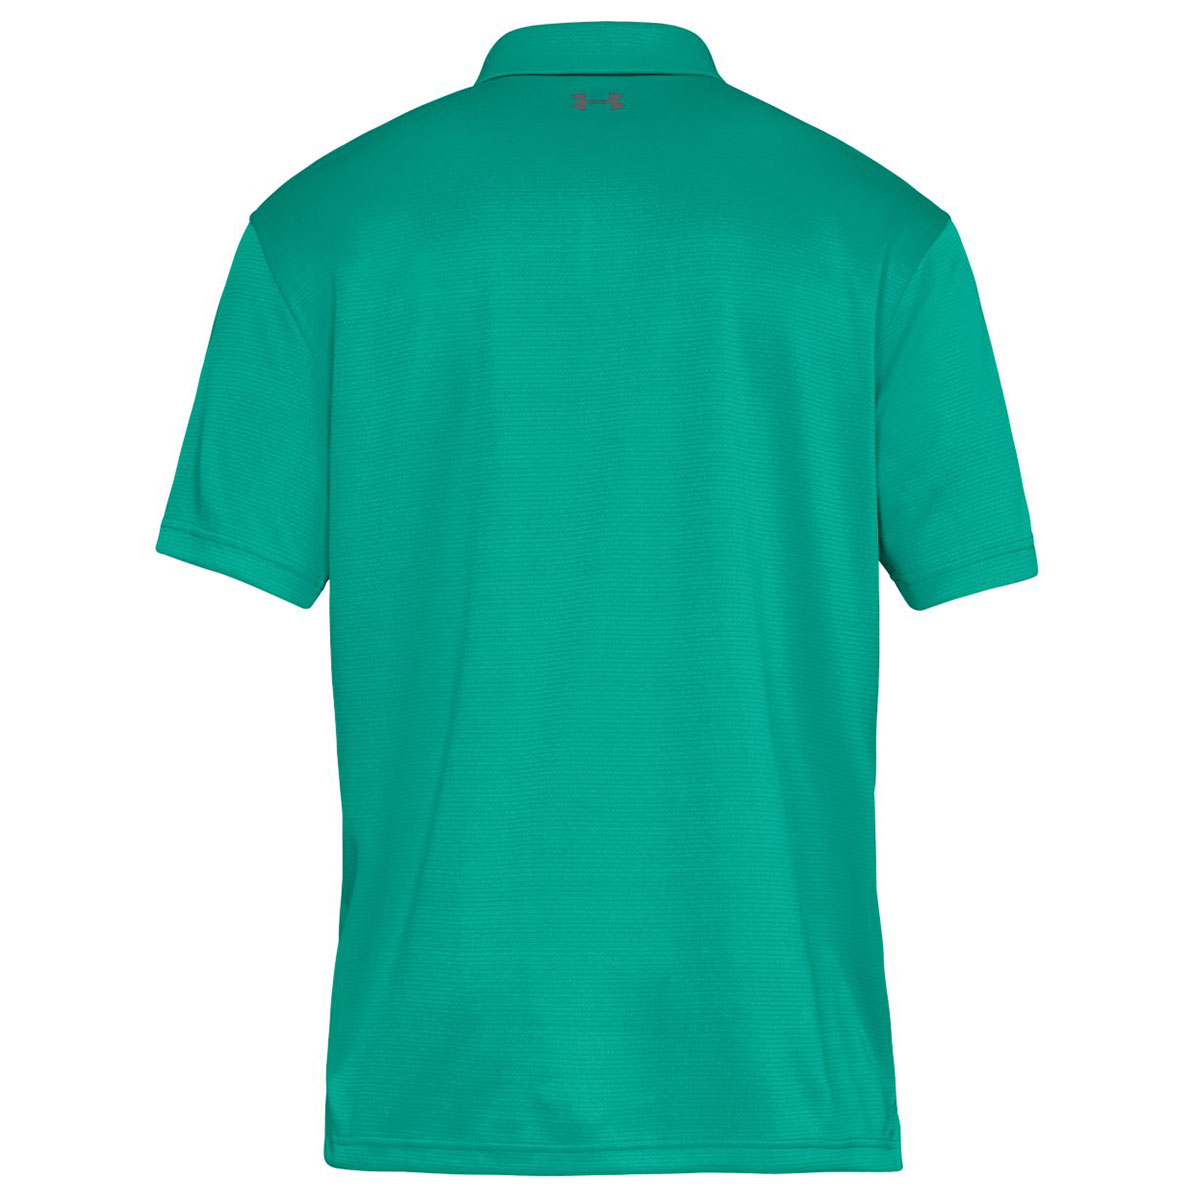 Under-Armour-Mens-Golf-Tech-Wicking-Textured-Soft-Light-Polo-Shirt thumbnail 37